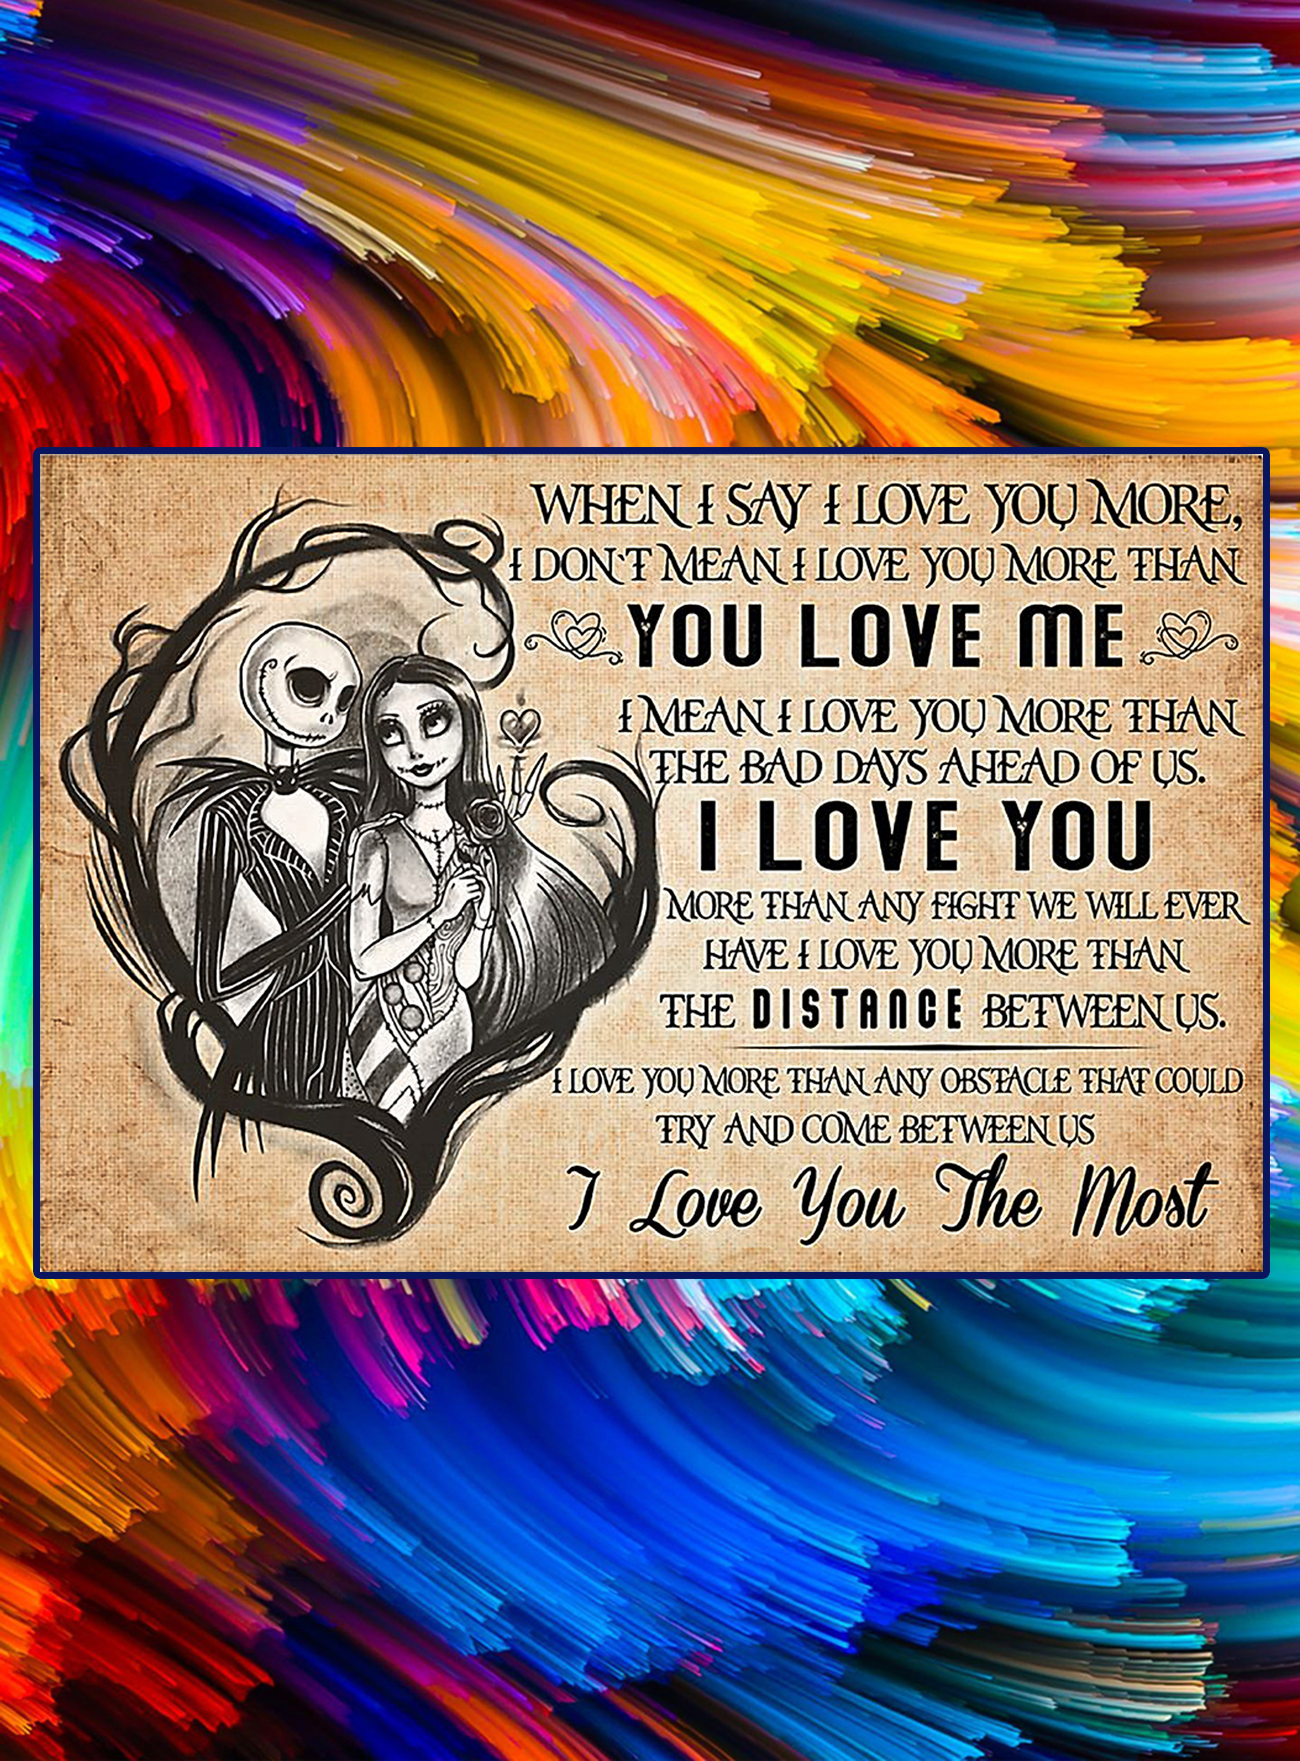 Jack and sally when I say I love you more poster - A4